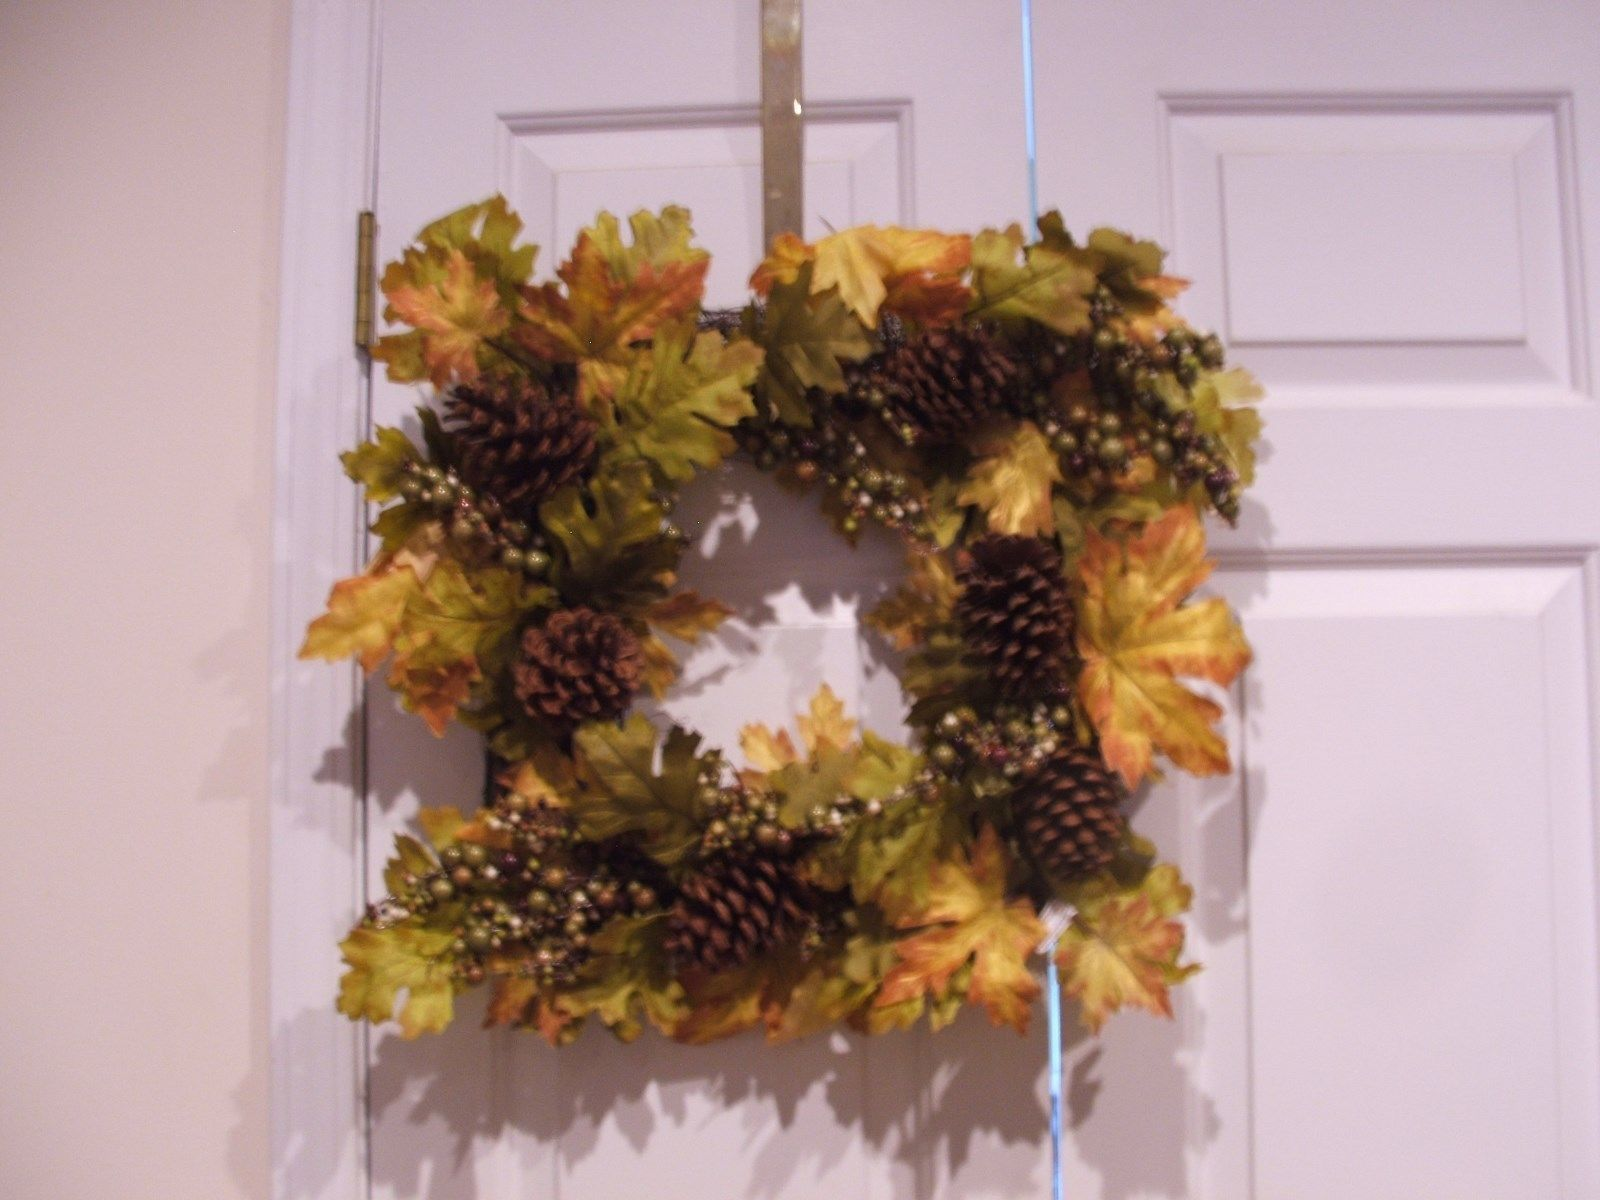 Nwt Pier 1 119 Large Square Fall Wildflower Pinecone Door Wreath 22 Across 61 37